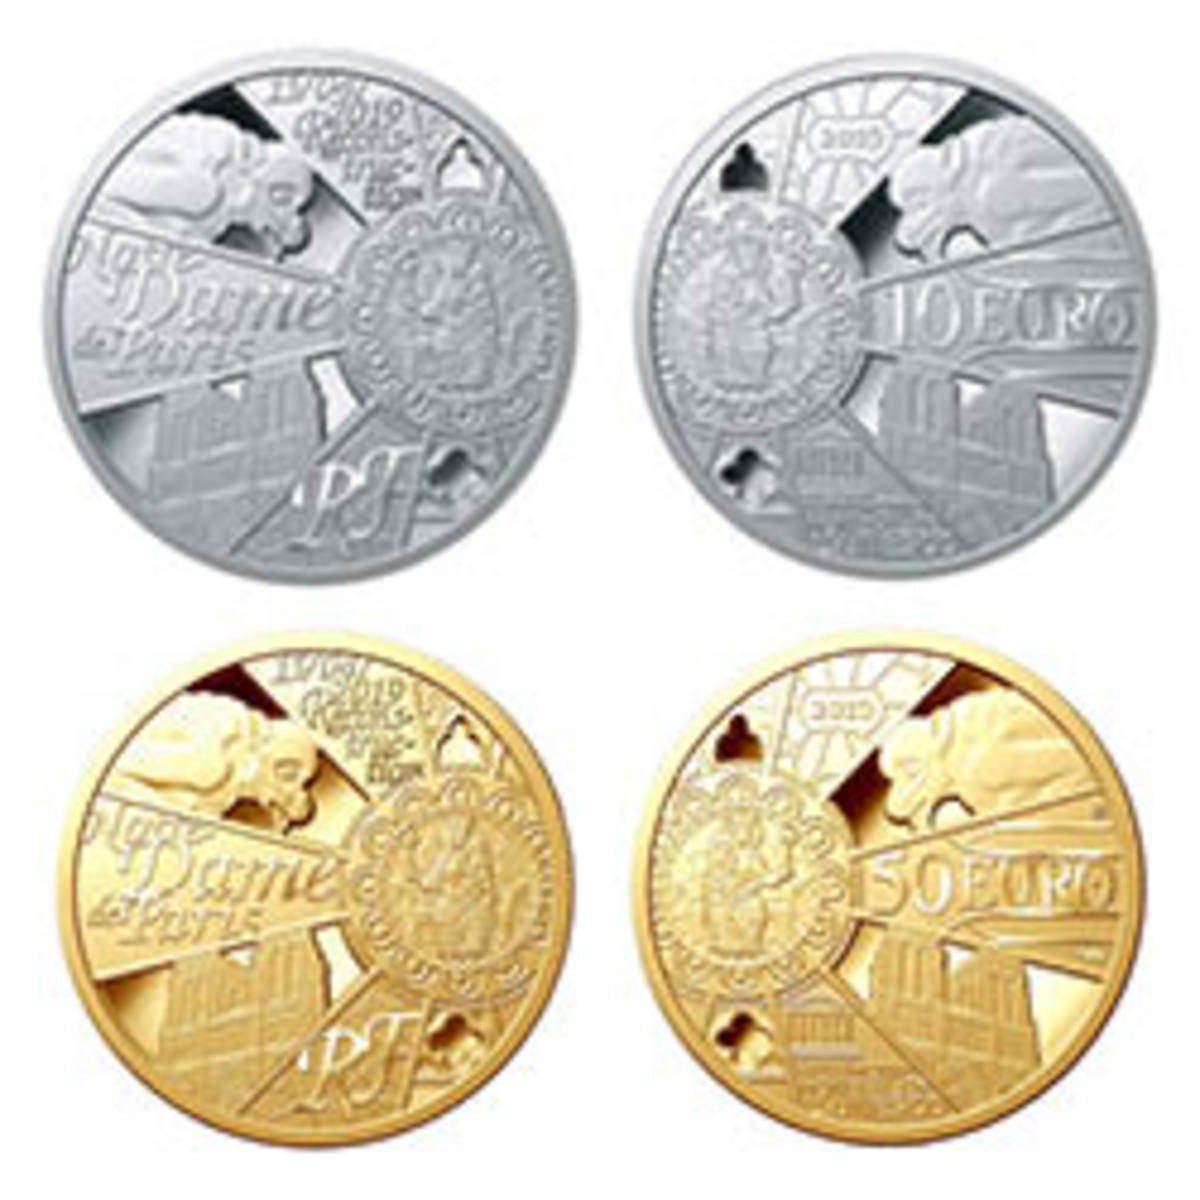 Silver €10 and gold €50 proof struck by Monnaie de Paris as part of the national effort to raise funds for the rebuild of Notre Dame Cathedral. The designs are based on the 2013 Notre Dame coins. Images courtesy Monnaie de Paris.